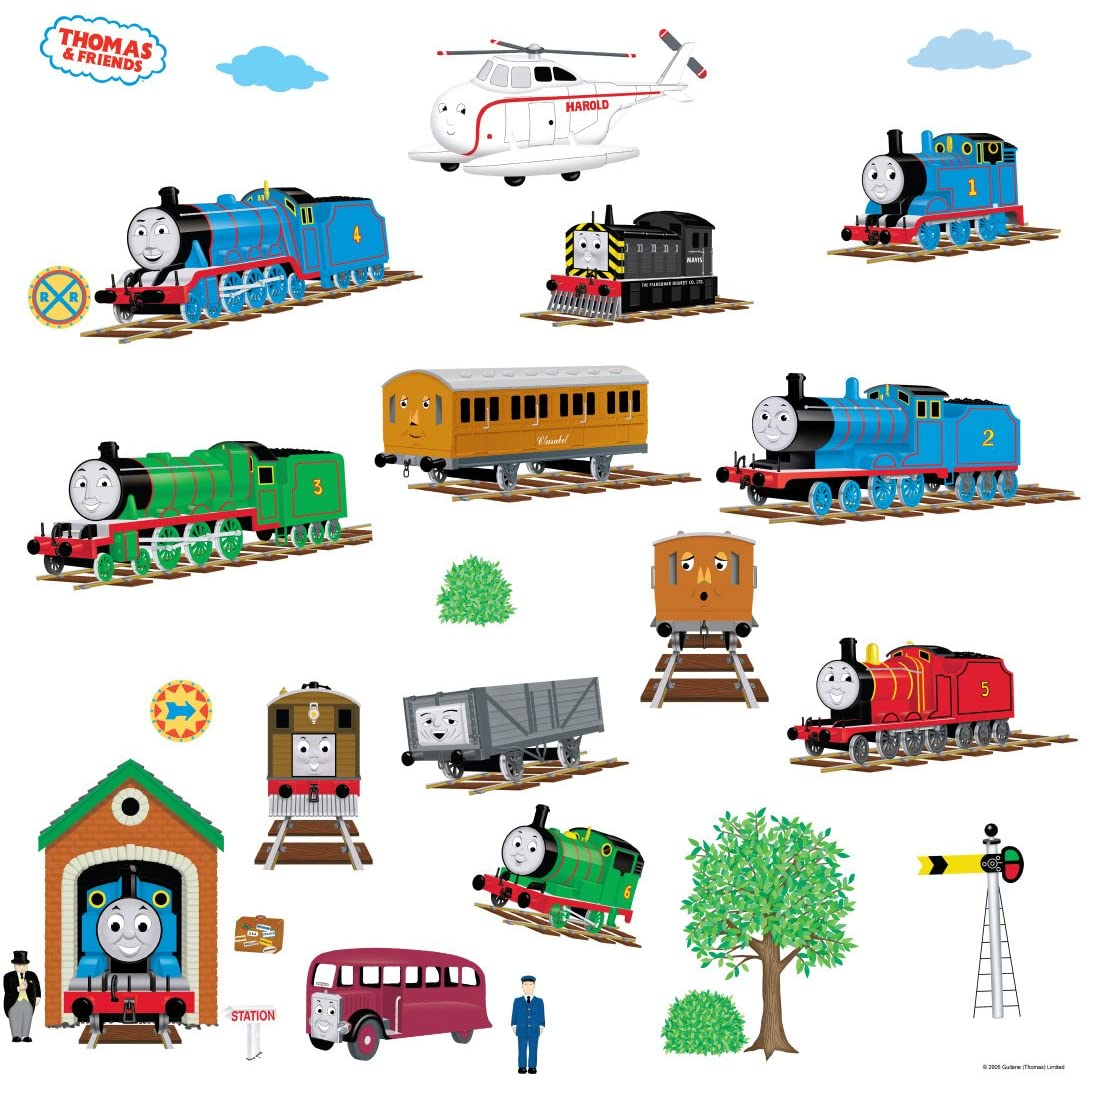 new thomas friends room appliques wall decor stickers. Black Bedroom Furniture Sets. Home Design Ideas